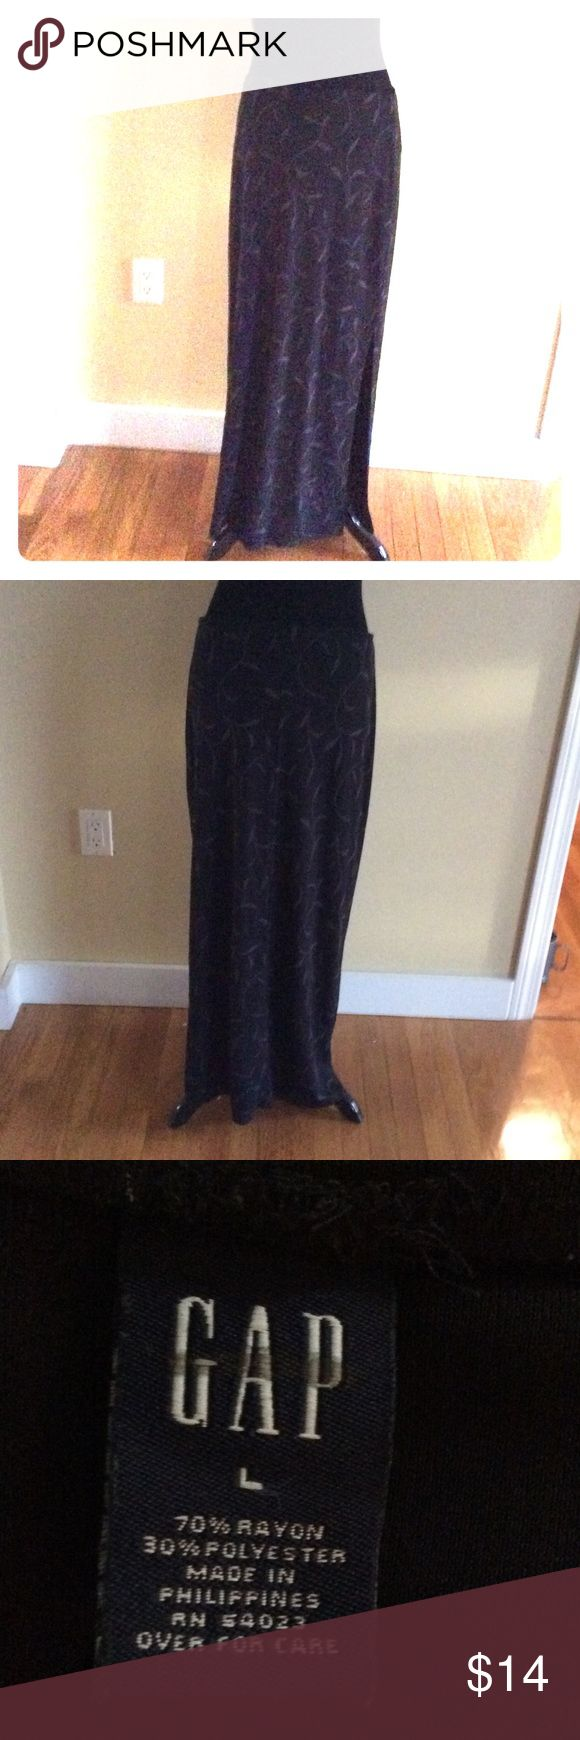 Gap Maxi Skirt sz L Gap skirt sz Large in good condition. Elastic waist with a slit . Fabric in pic. GAP Skirts Maxi